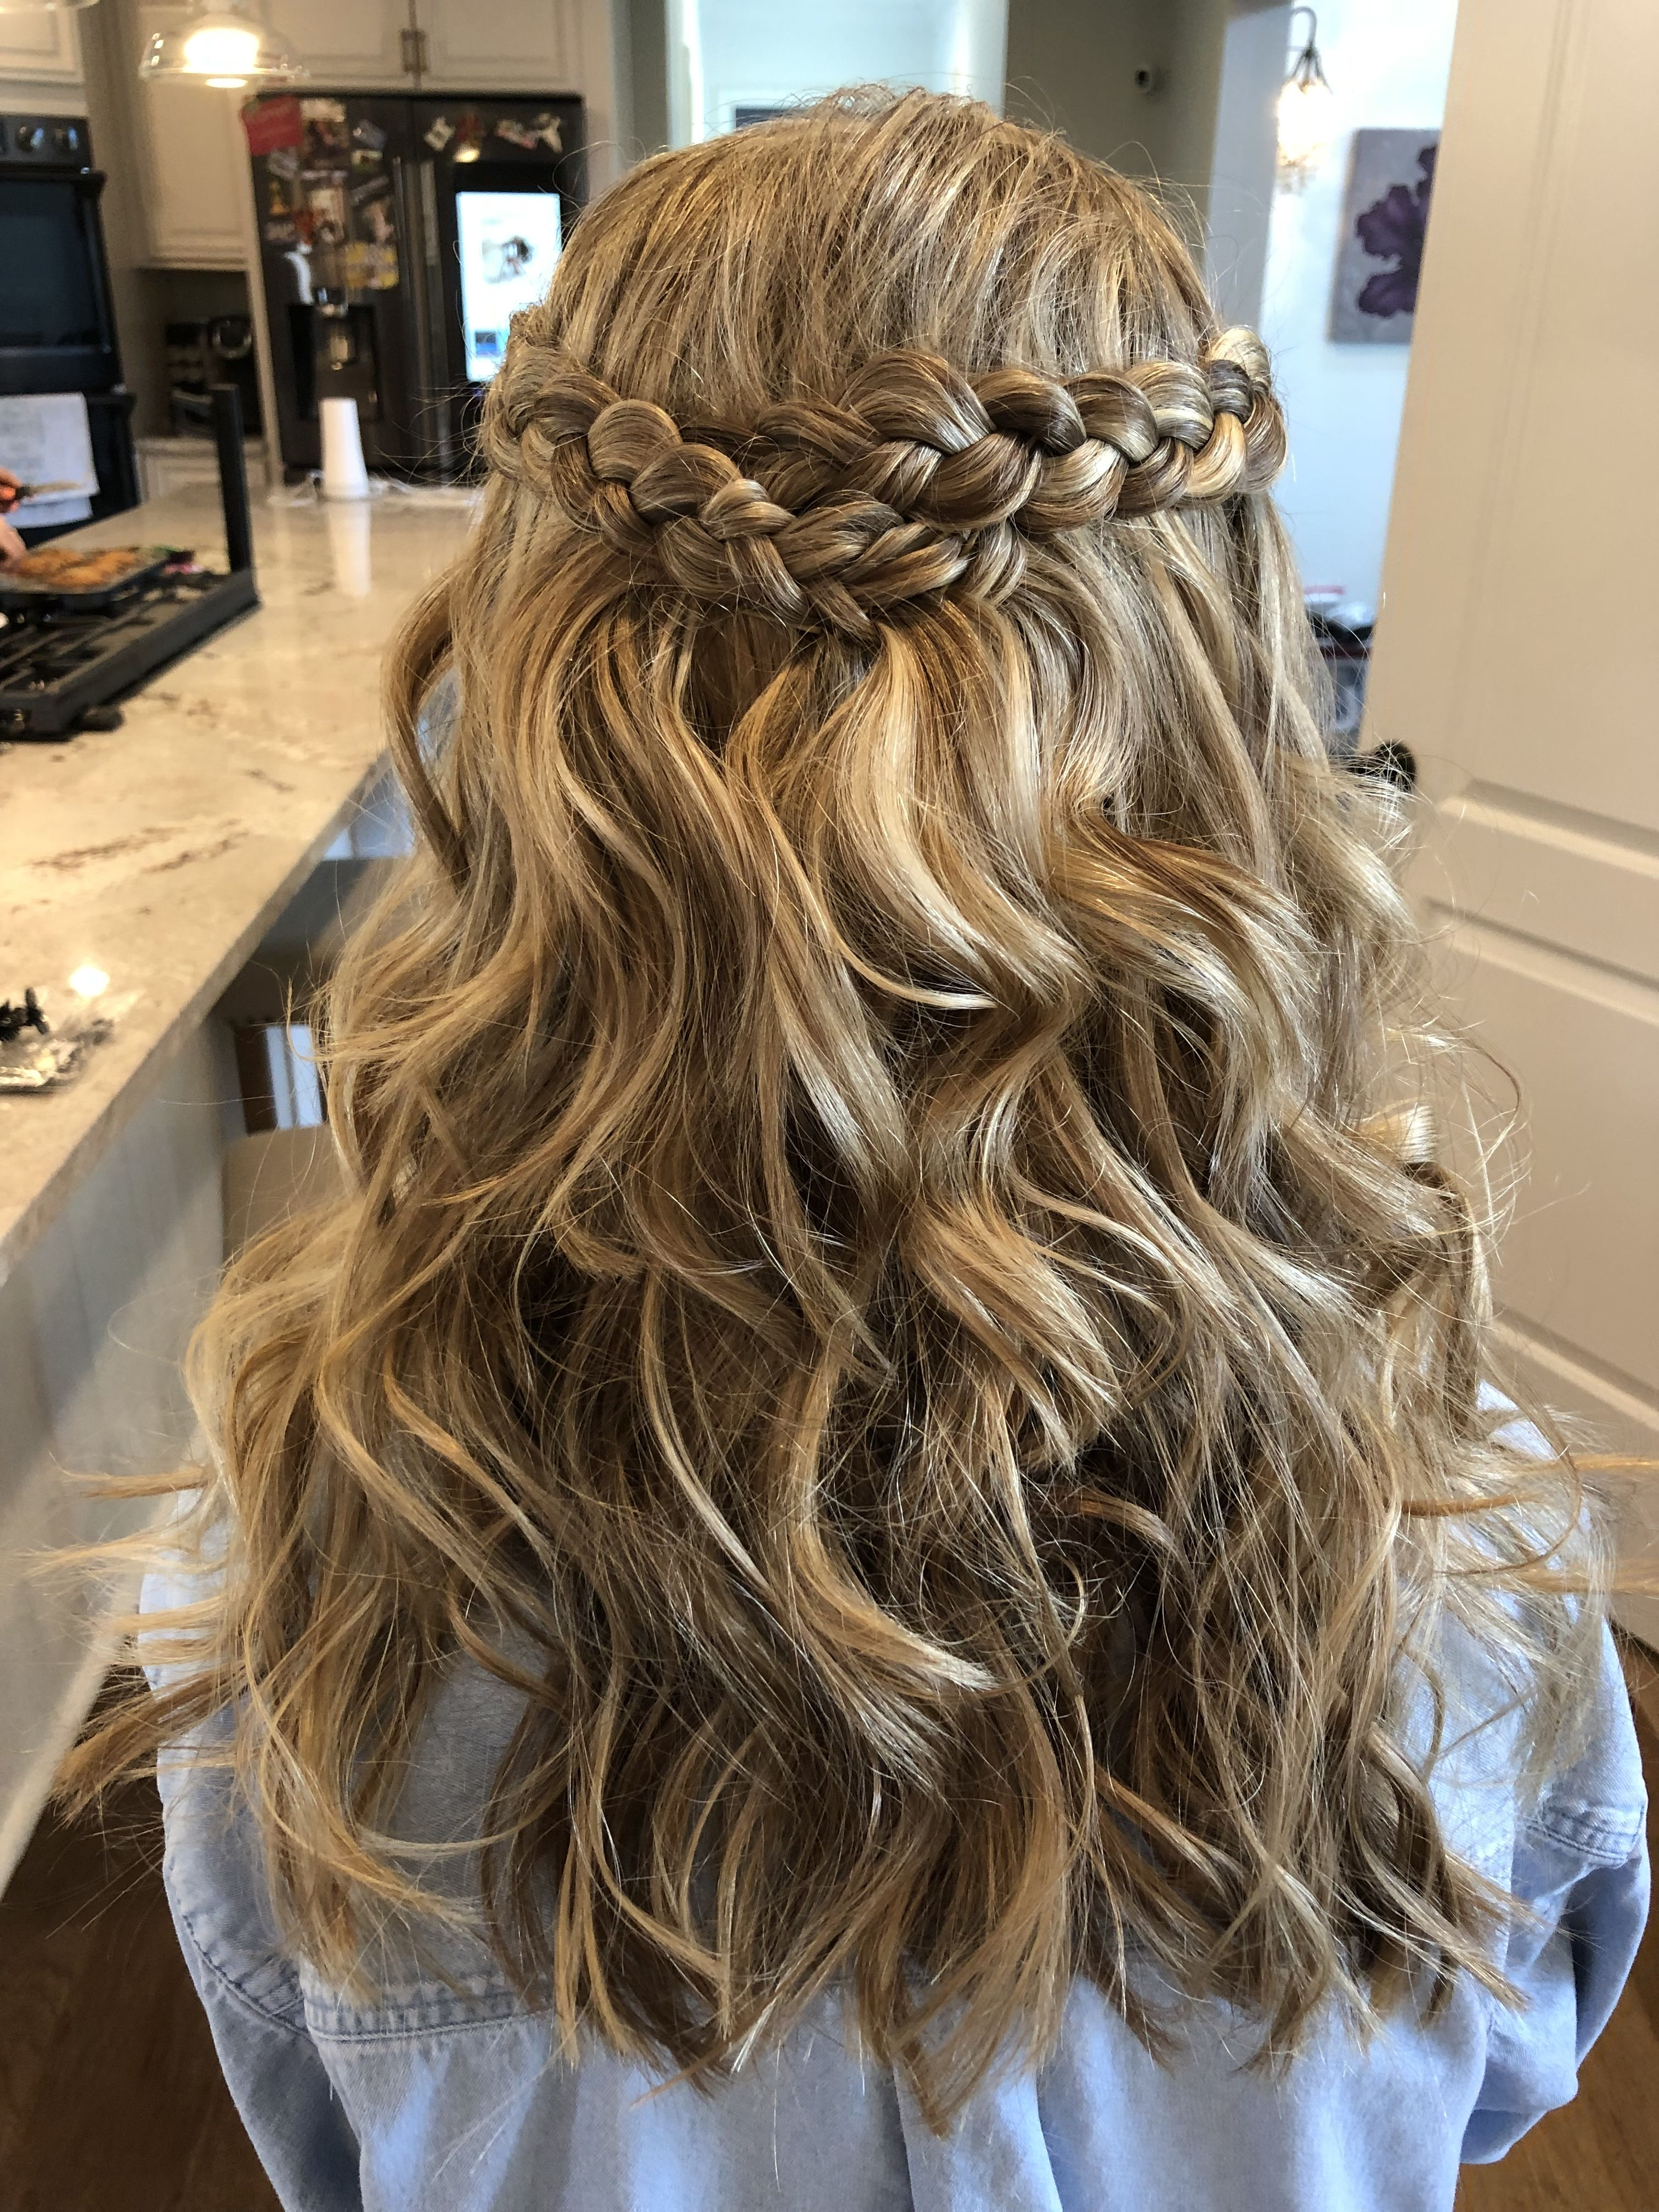 Medium length hair curled with 12inch wand. Braided sides brought